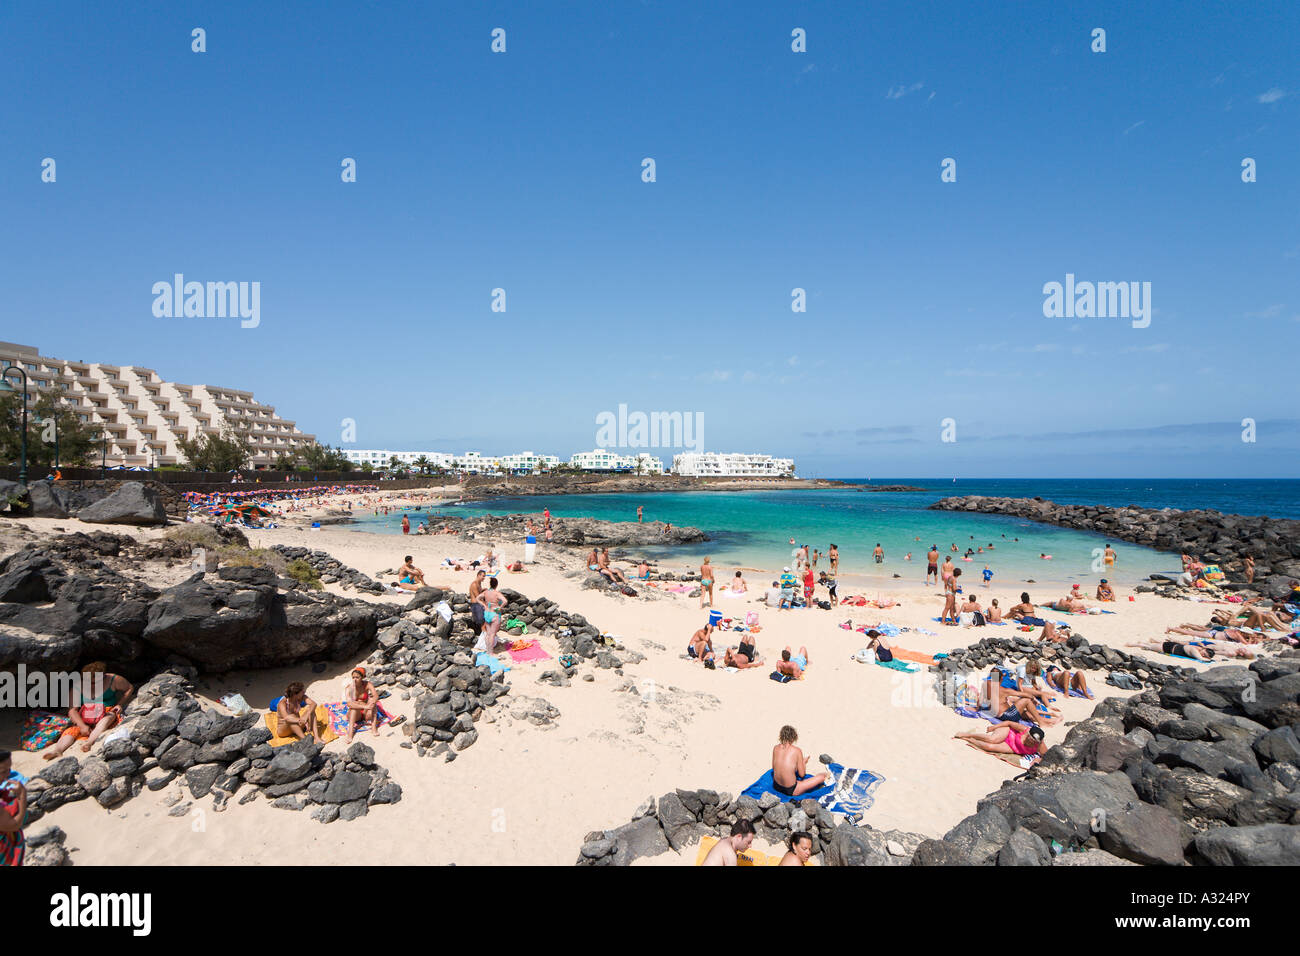 Beach at Playa del Jablillo, Costa Teguise, Lanzarote, Canary Islands, Spain - Stock Image